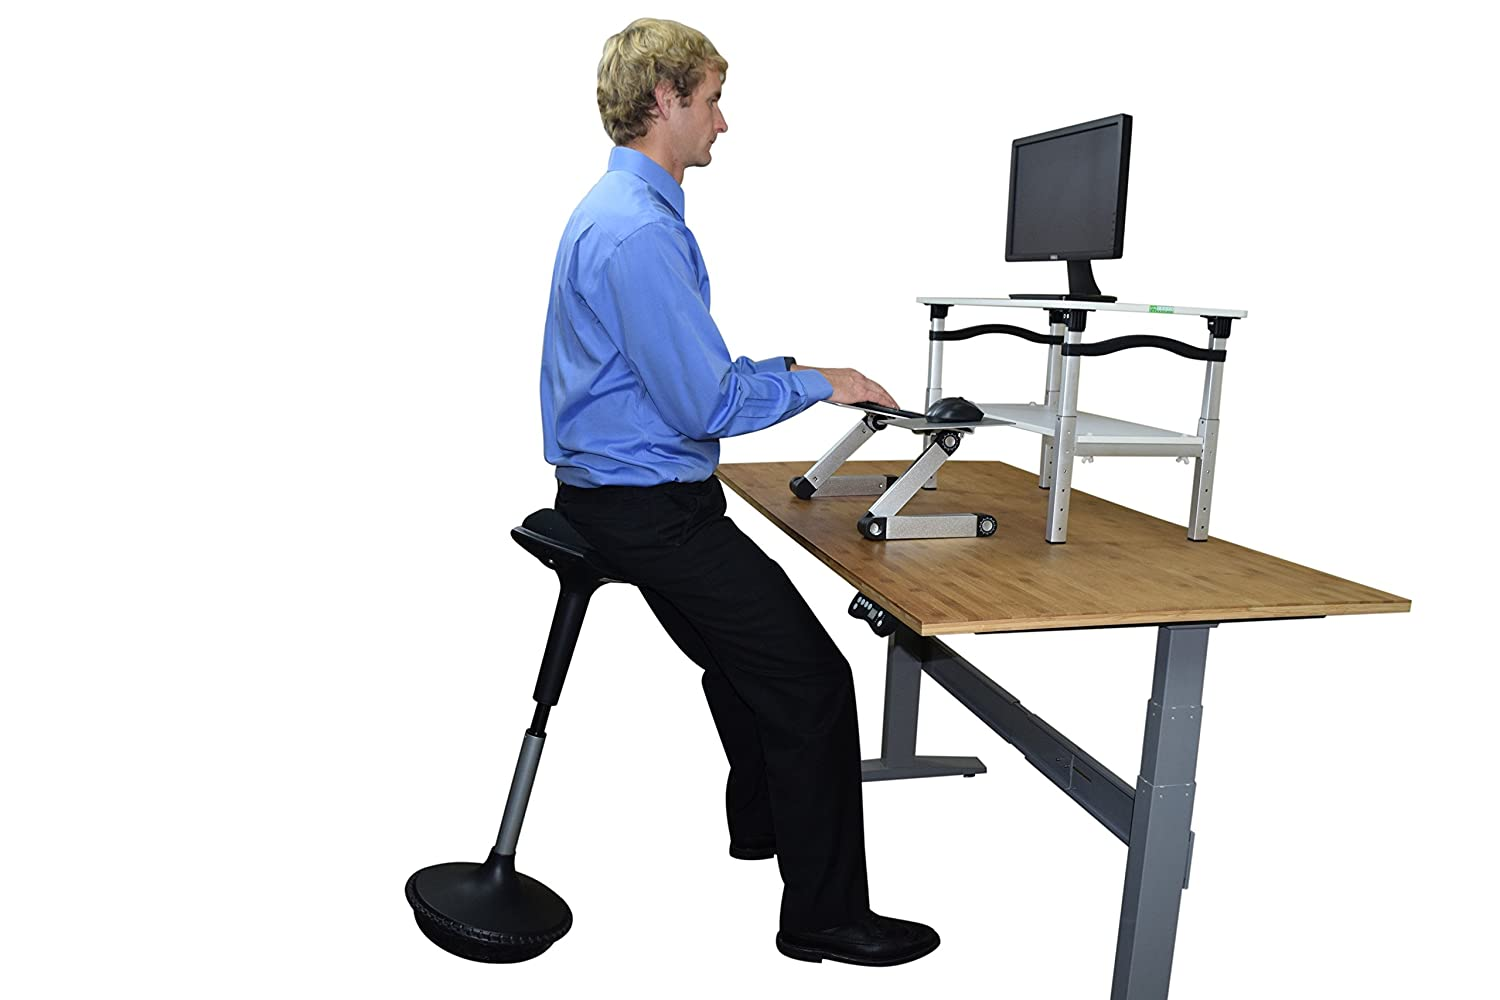 Amazon.com  Uncaged Ergonomics Wobble Stool Adjustable Chair Black  Office Products  sc 1 st  Amazon.com & Amazon.com : Uncaged Ergonomics Wobble Stool Adjustable Chair ... islam-shia.org